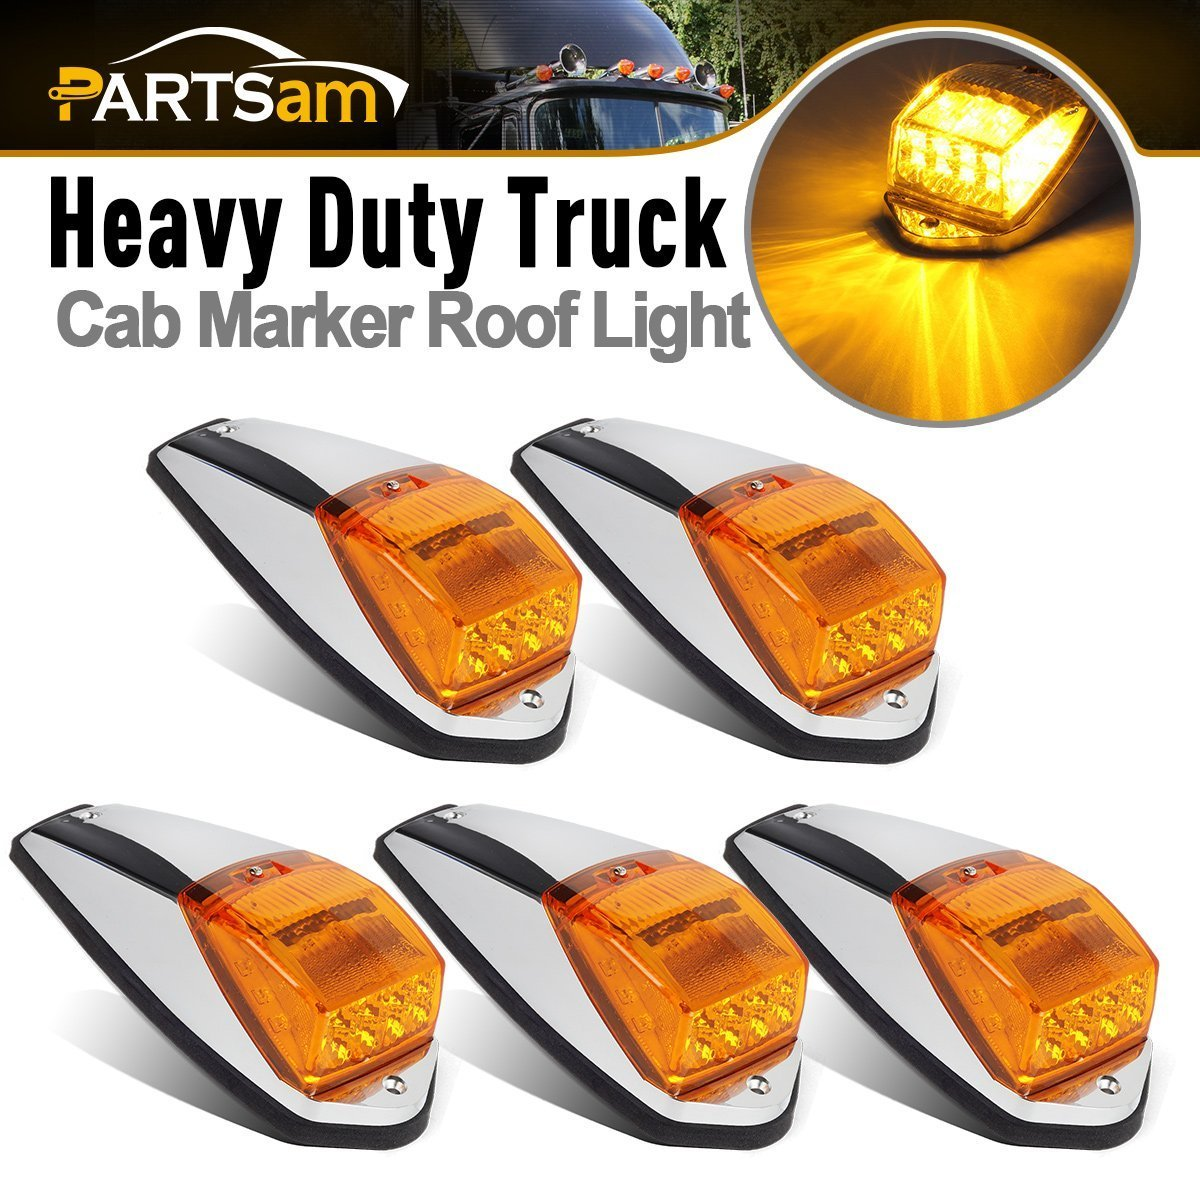 Partsam 5PCS Truck Cab Marker Light 17 LED Amber Top Clearance Roof Running Lights w/Chrome Base Truck Trailer Light Replacement for Peterbilt Kenworth Freightliner Volvo Mack Autocar Hayes